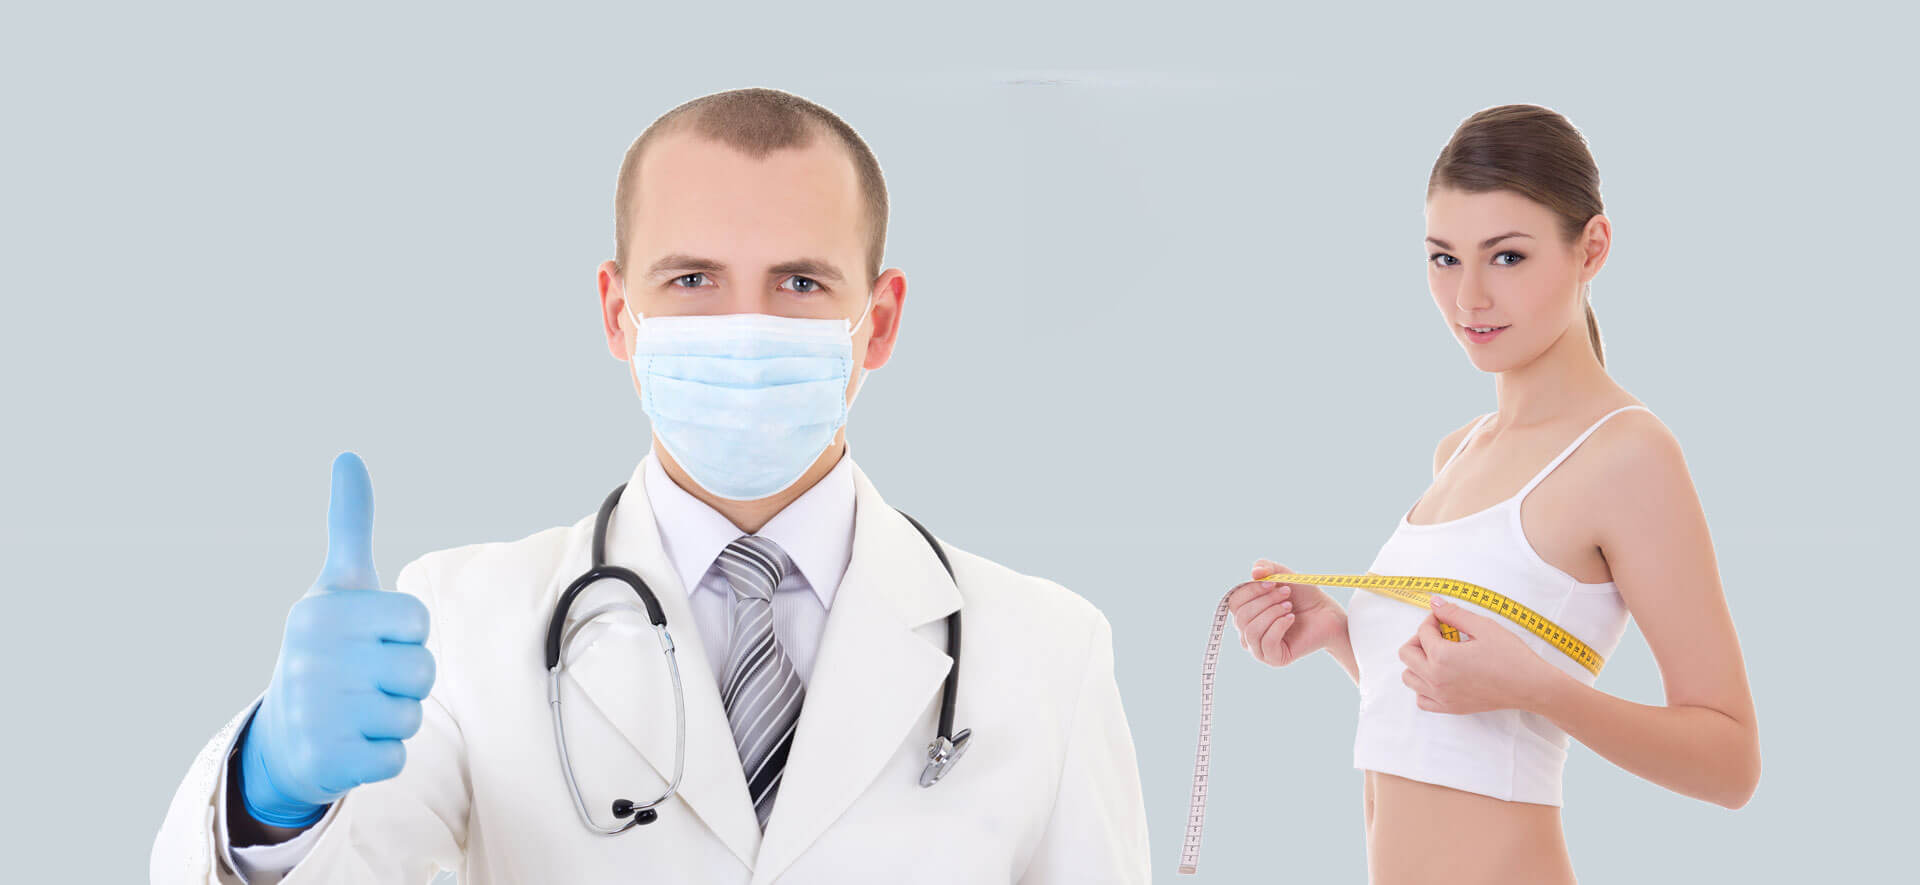 Doctor in mask and blue gloves giving thumbs up with female breast augmentation patient